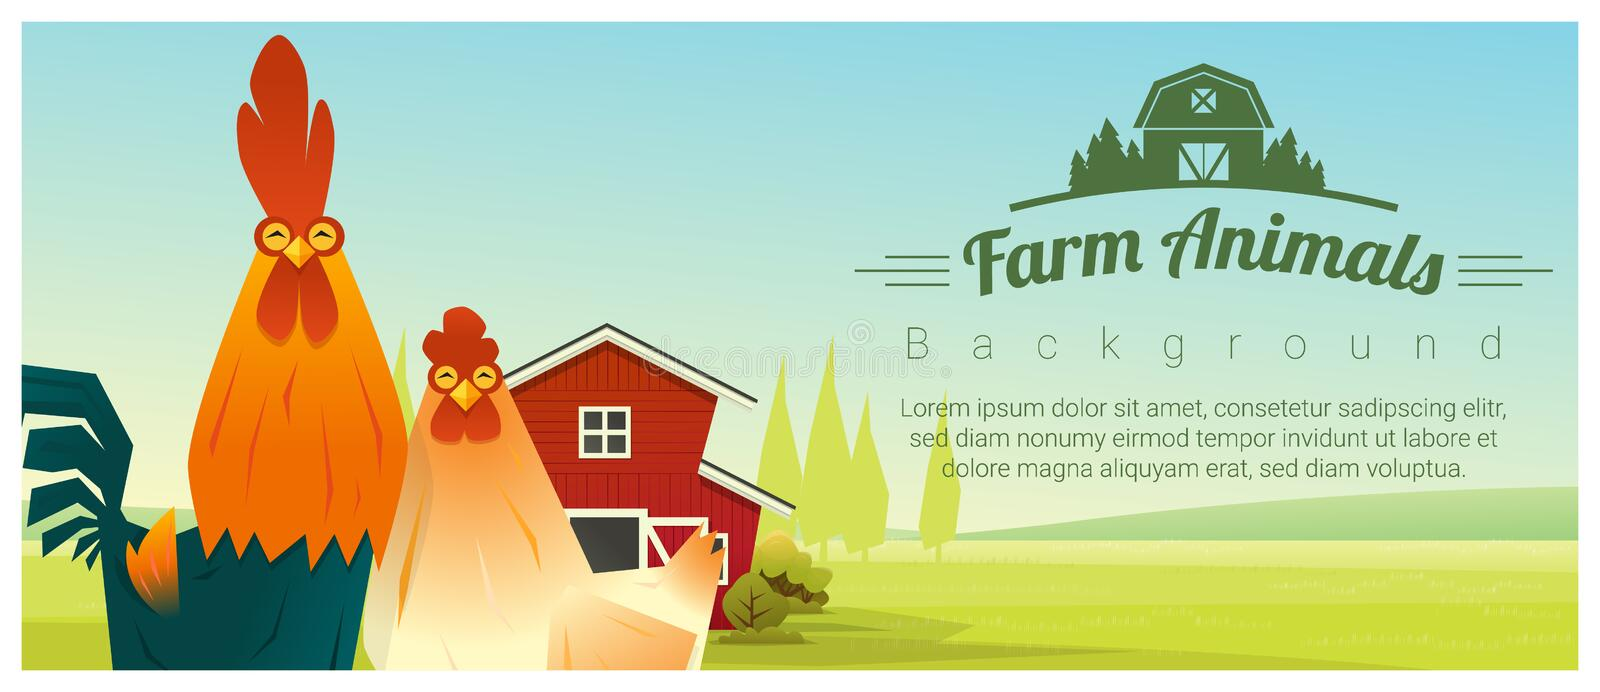 Farm animal and Rural landscape background with chicken vector illustration